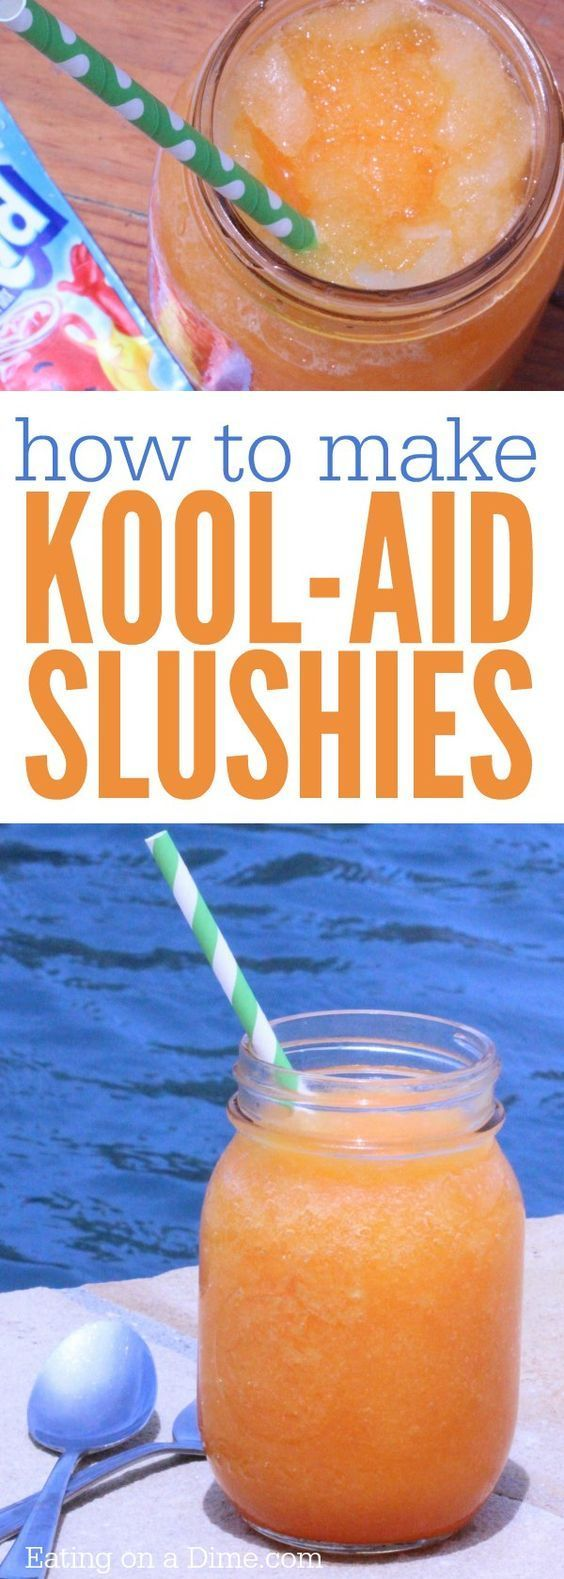 How To Make A Slushie With Kool Aid Recipe Slushies Kid Drinks Homemade Slushies